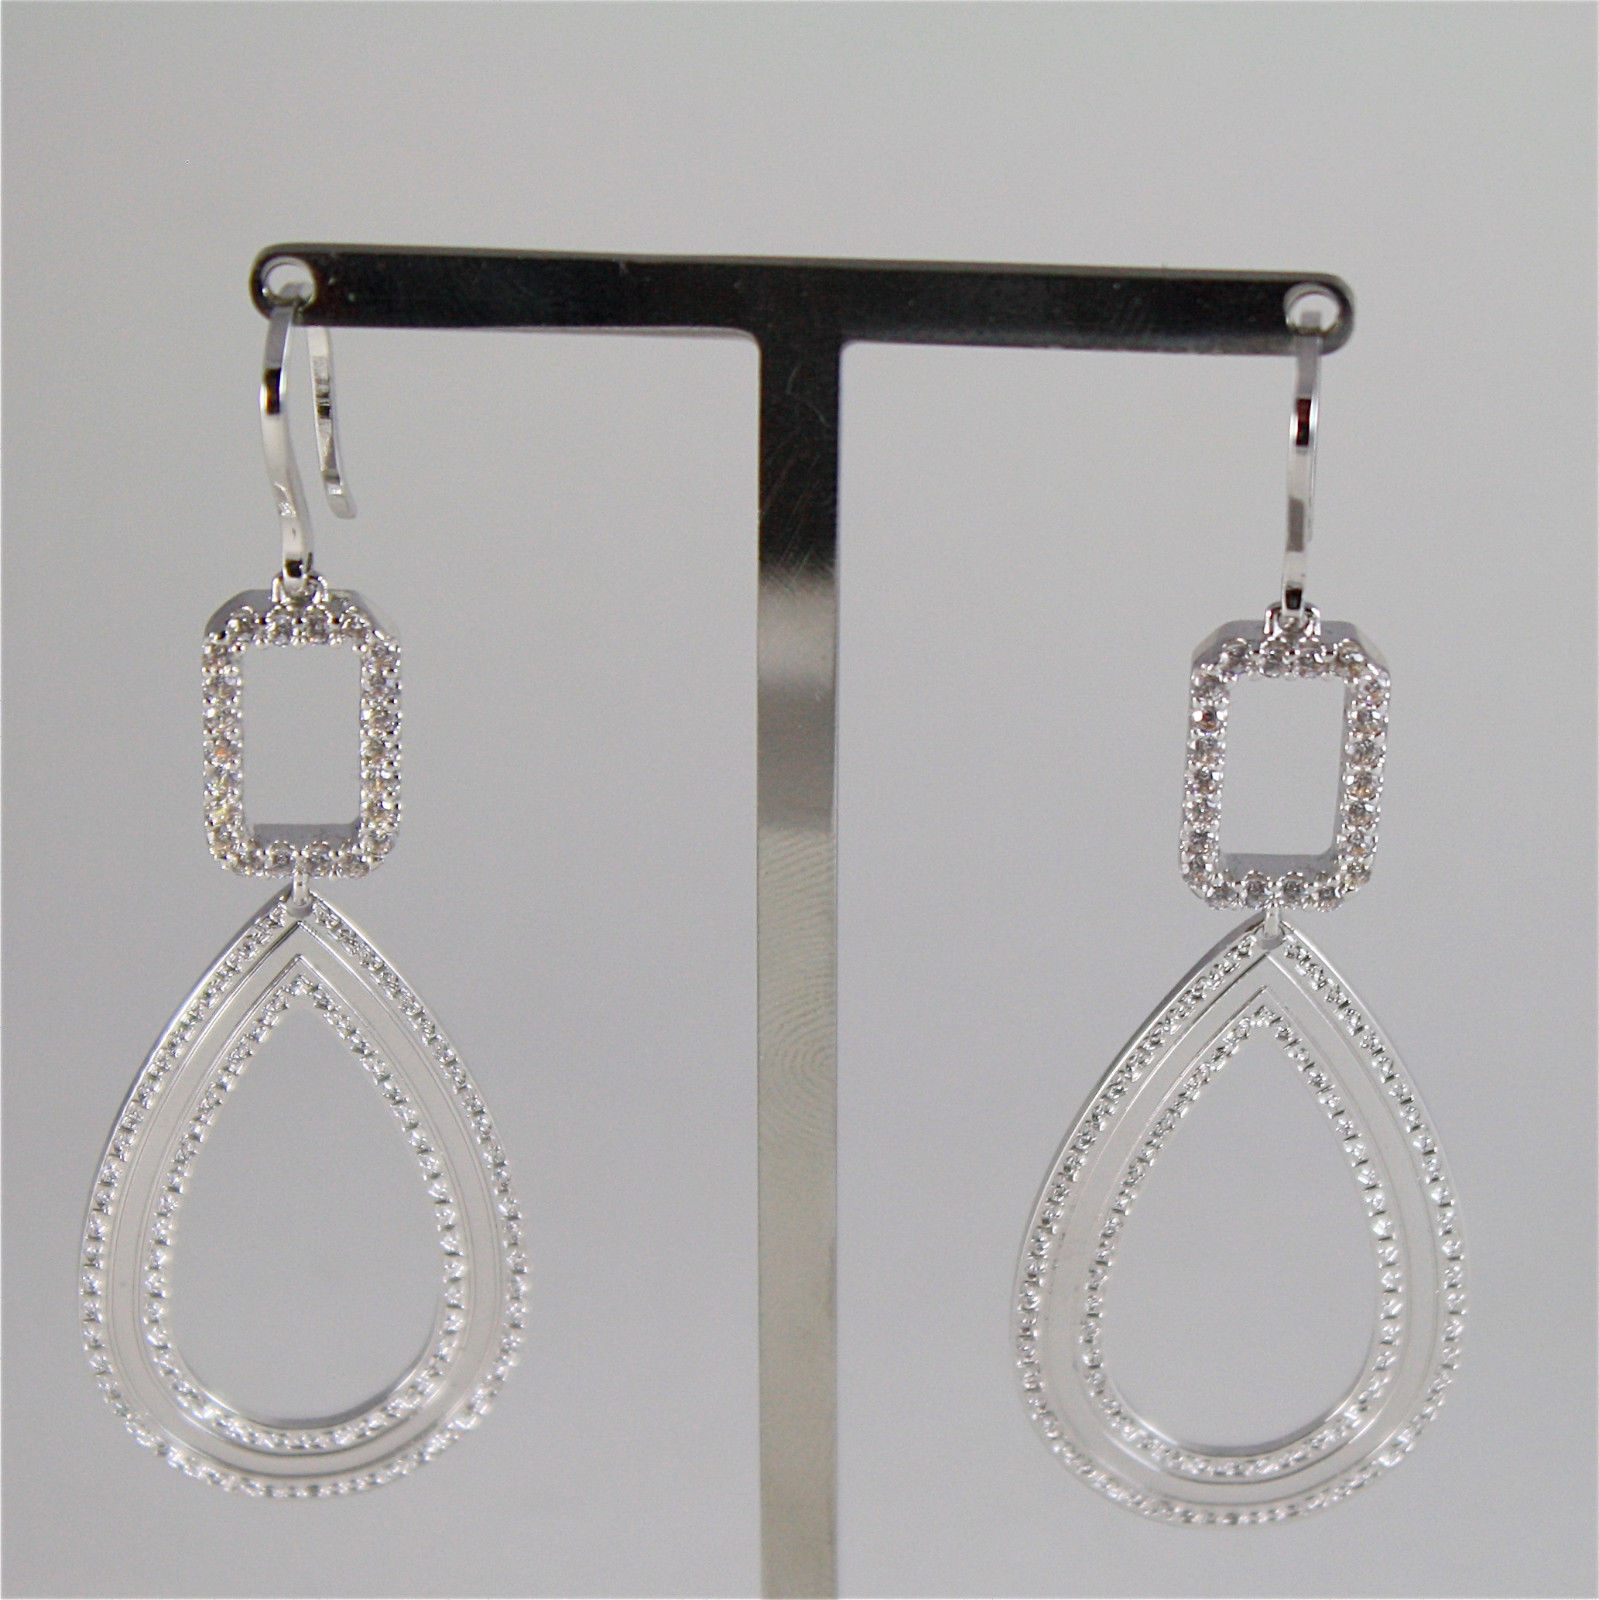 WHITE GOLD PLATED BRONZE REBECCA HOOK EARRINGS ELIZABETH BELOBB08 MADE IN ITALY